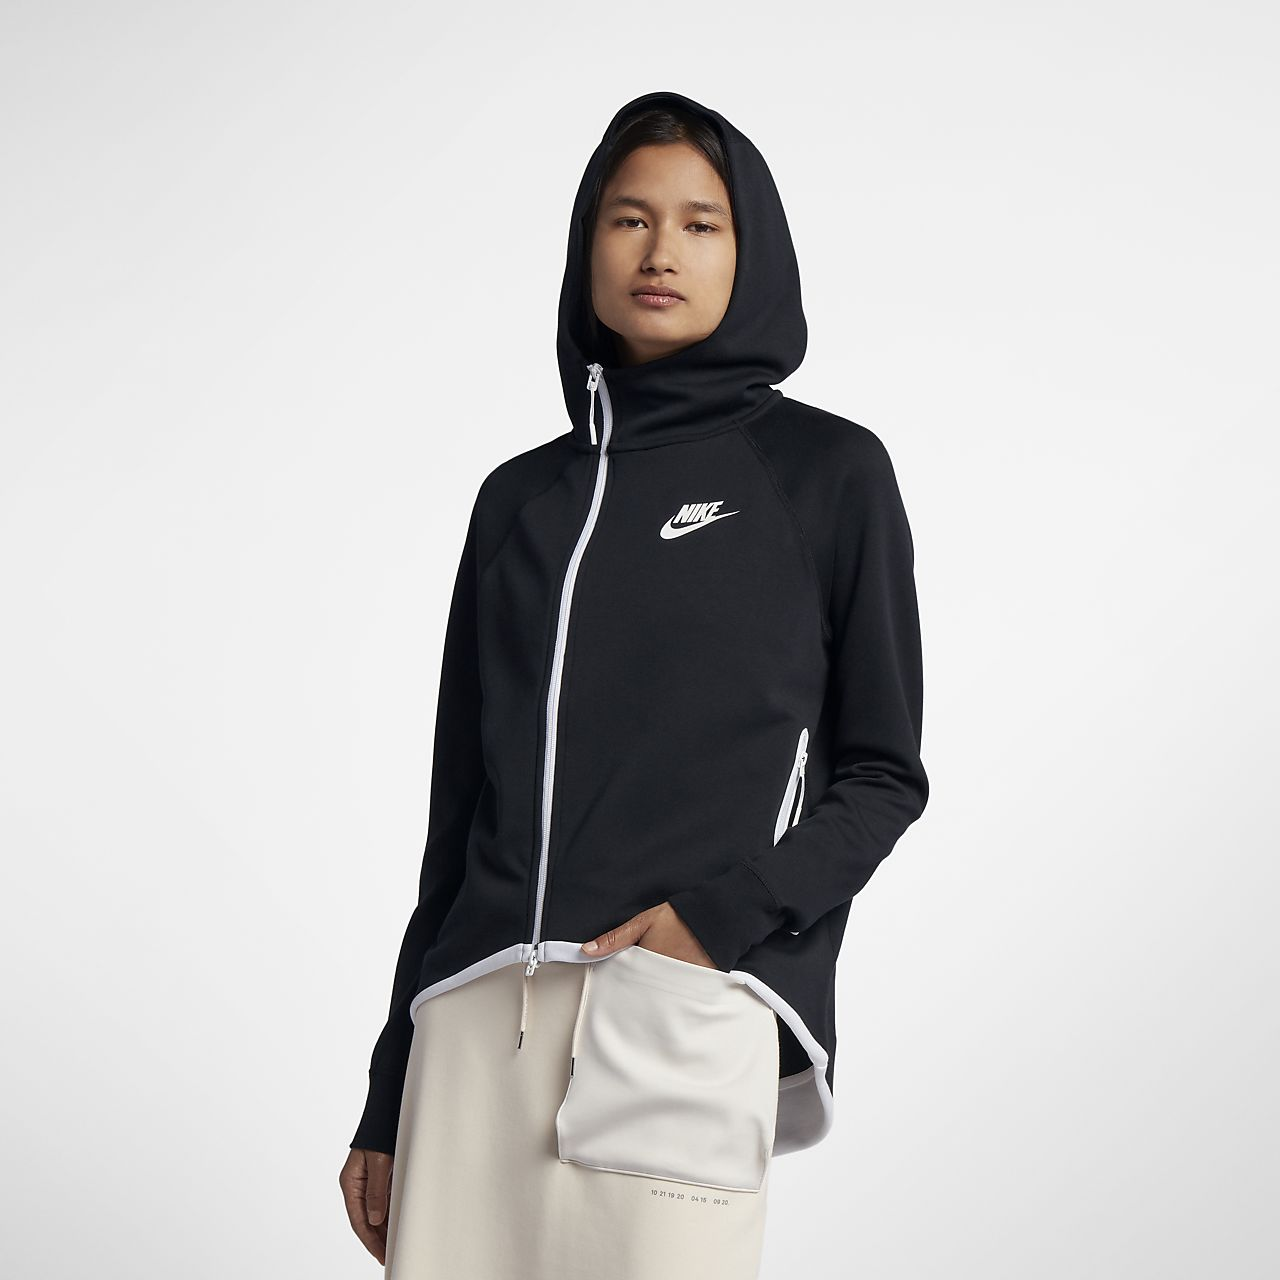 bc6cea7cc7 Nike Sportswear Tech Fleece Women's Full-Zip Cape